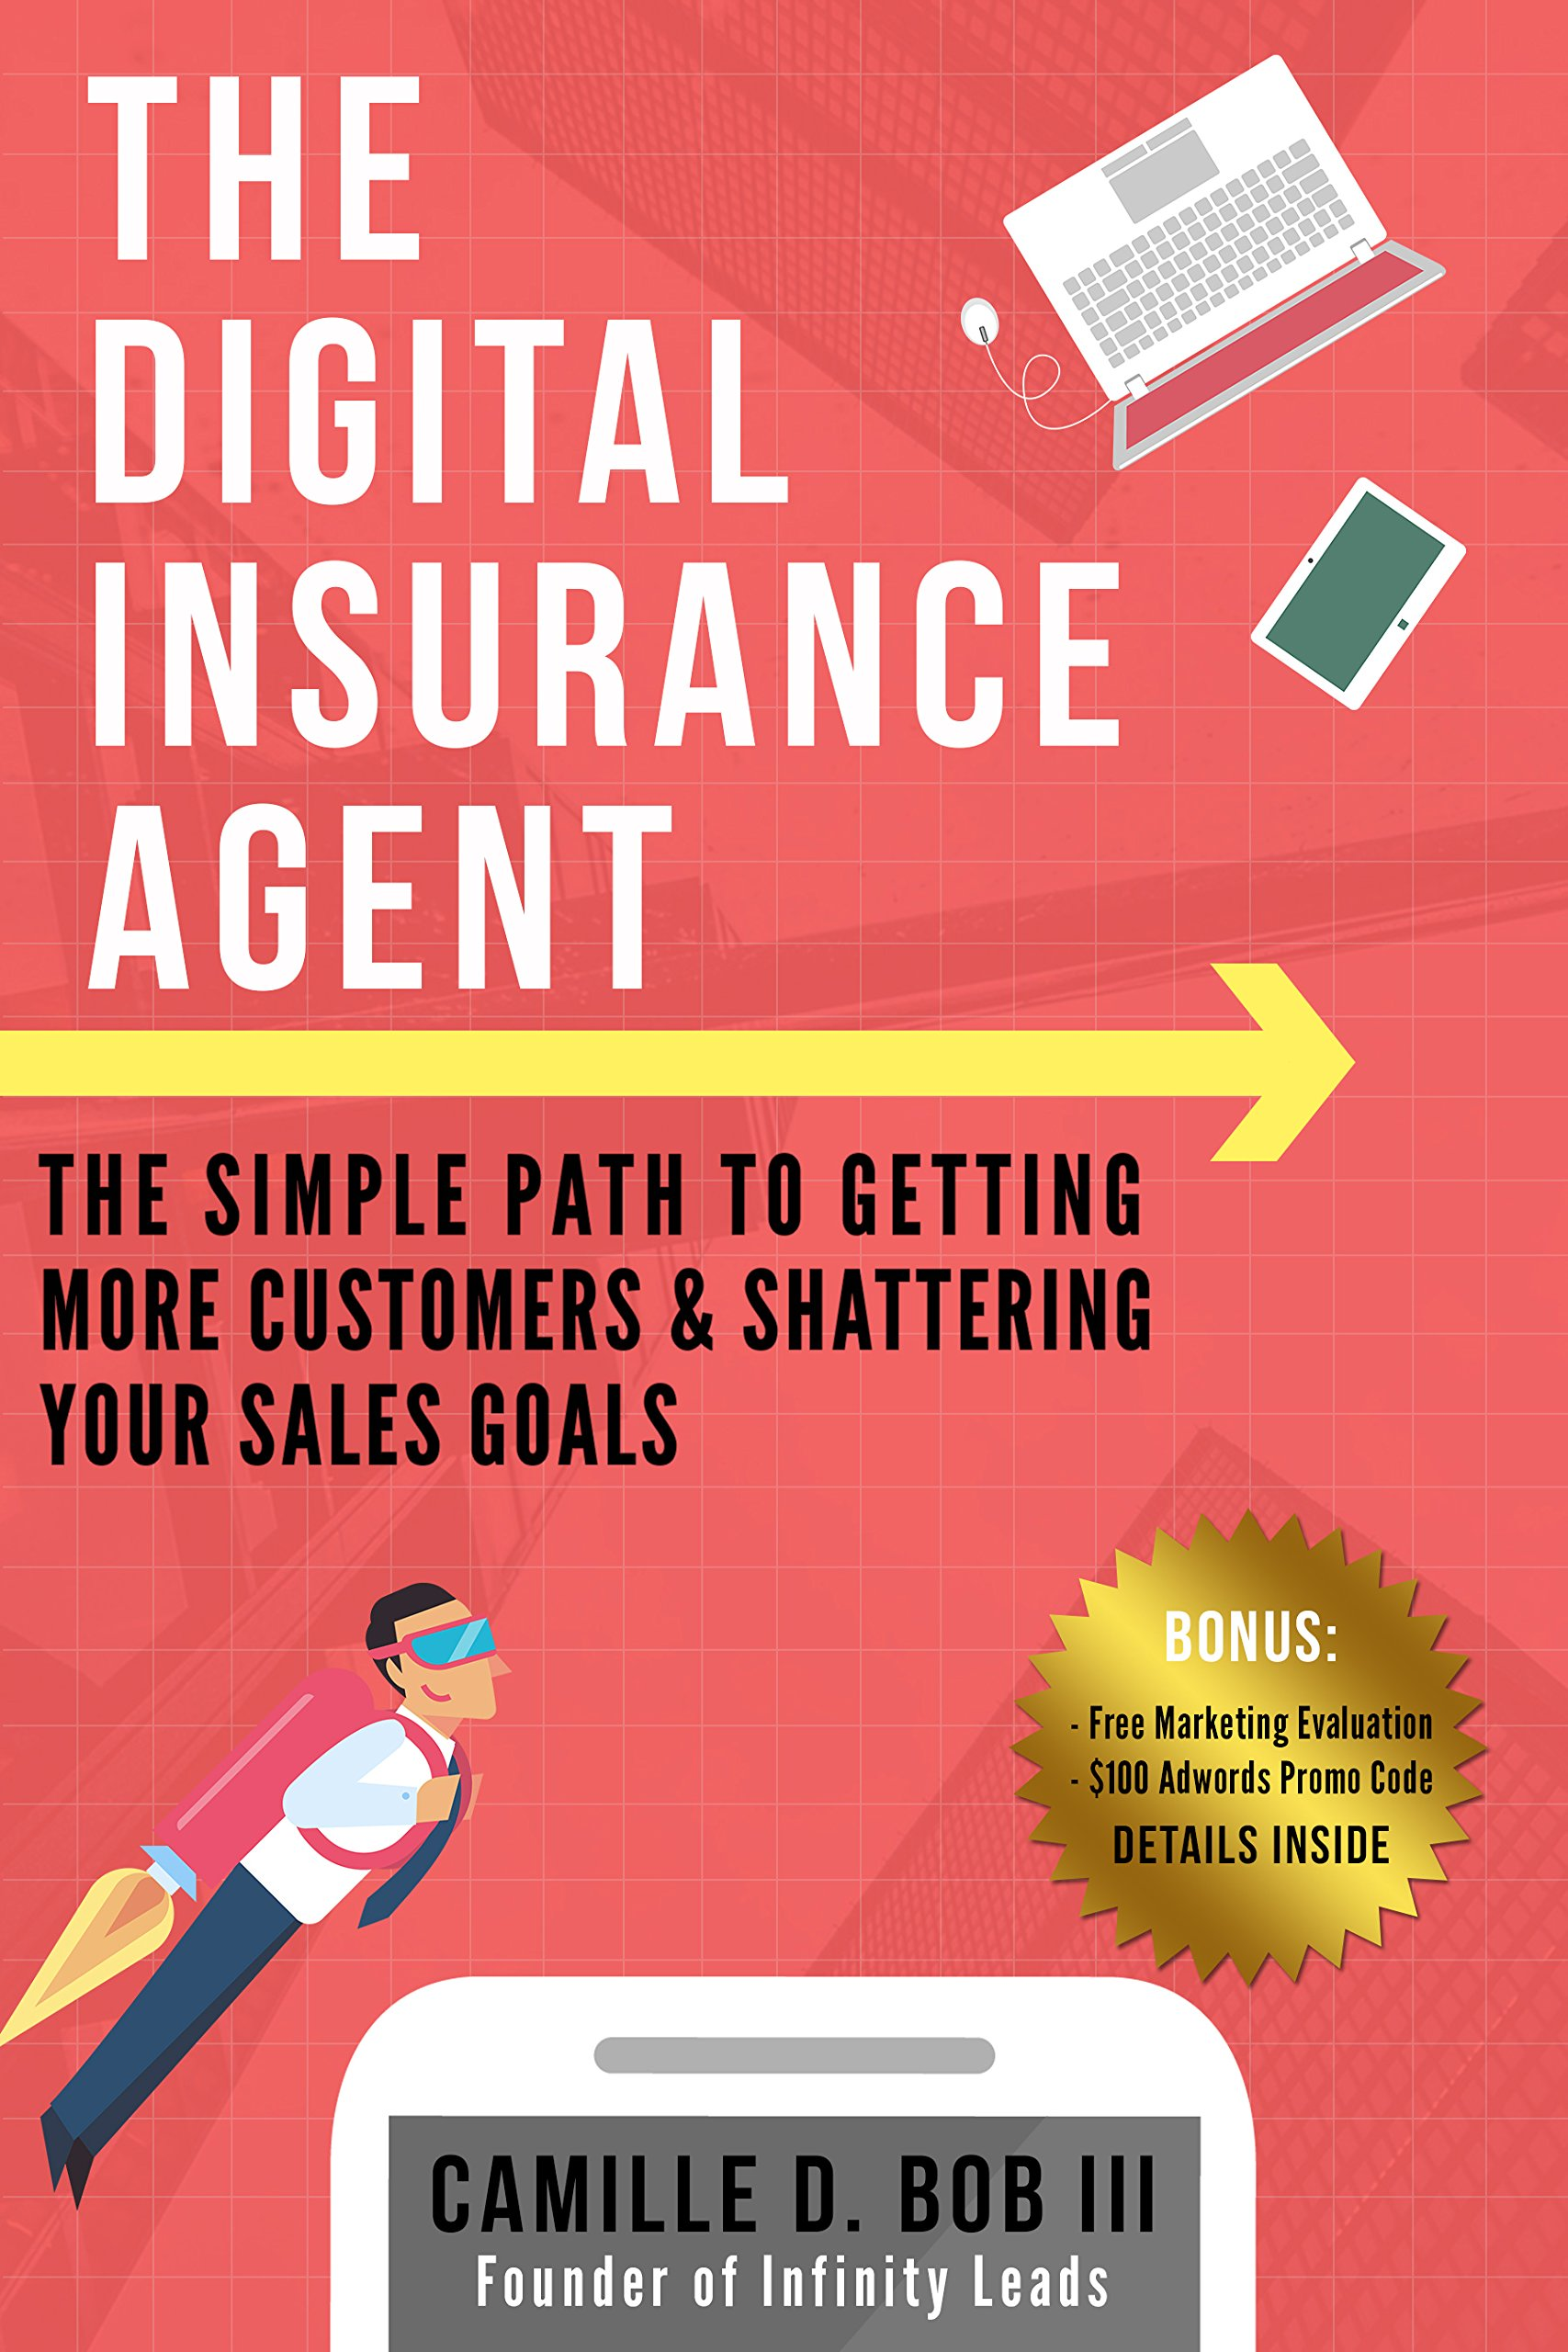 The Digital Insurance Agent: The Simple Path To Getting More Customers & Shattering Your Sales Goals